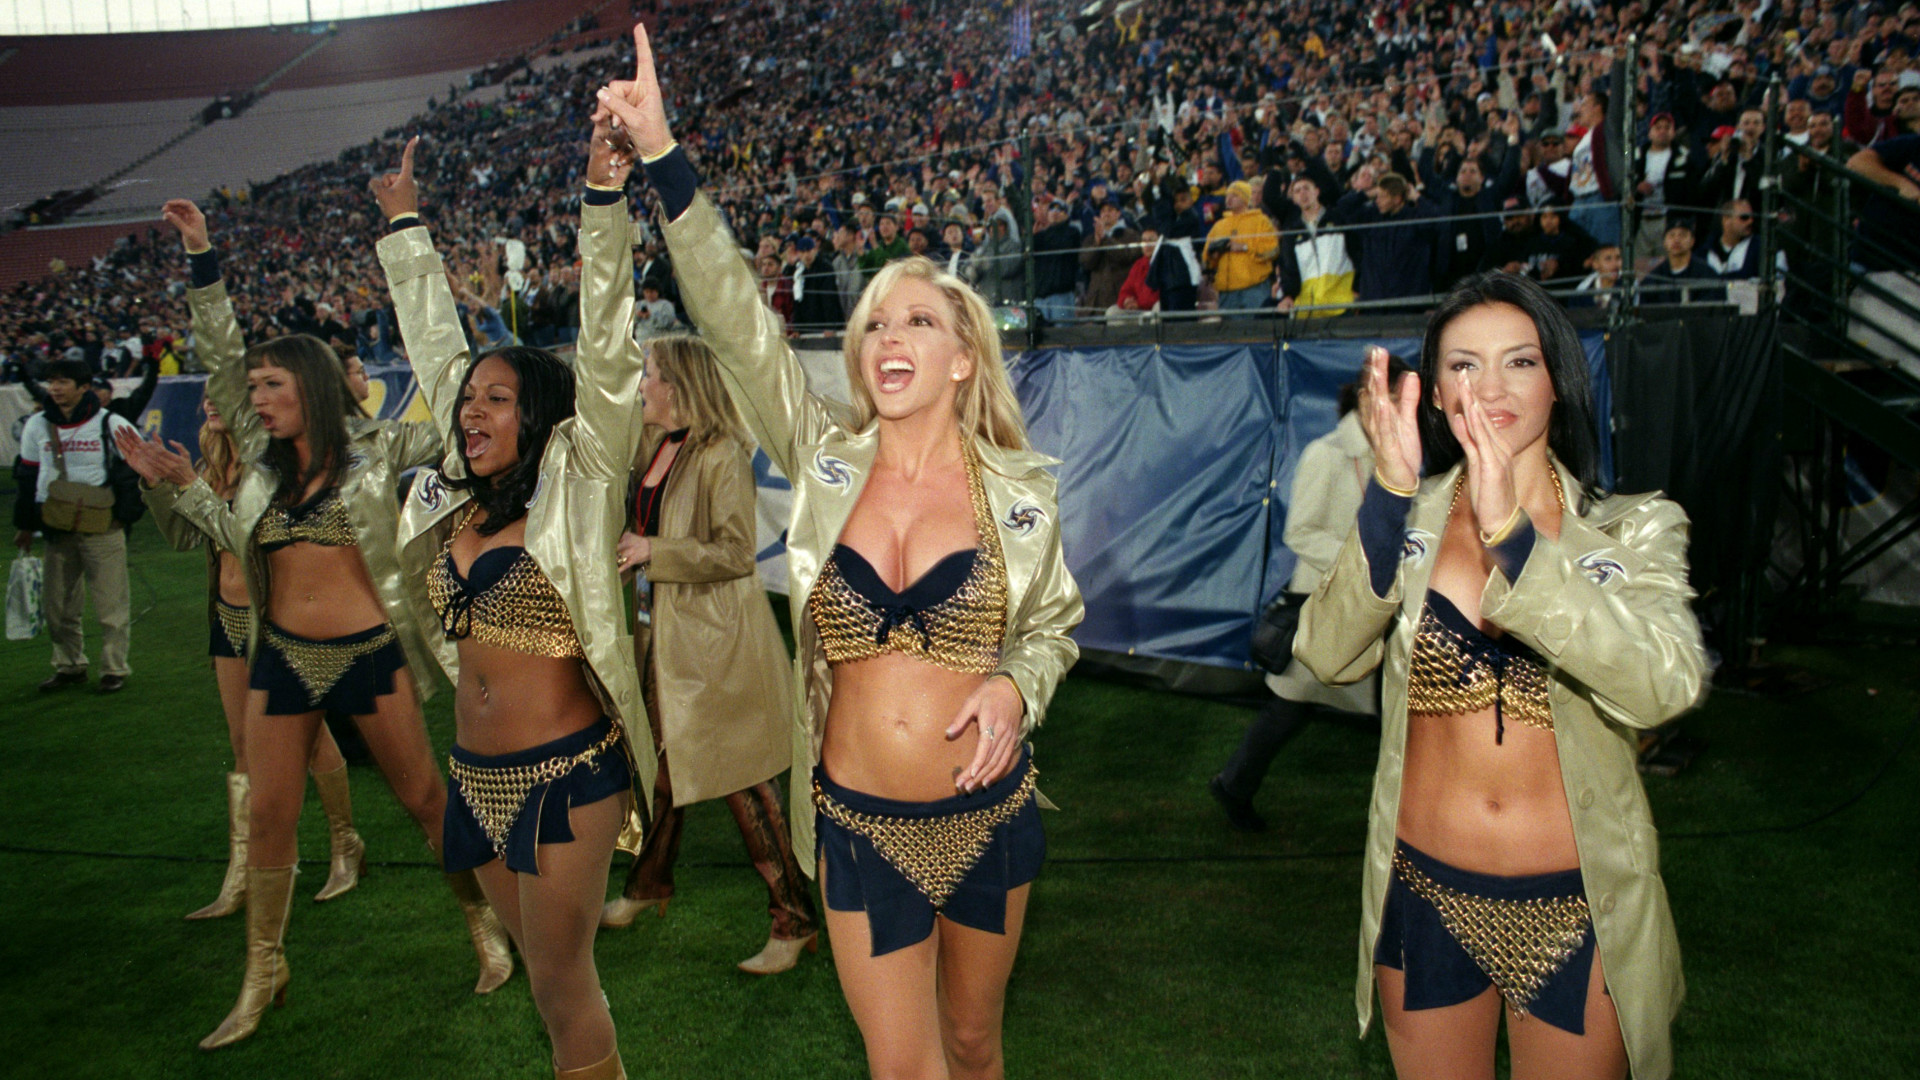 The X-Rated XFL Cheerleaders That Put The NFL In The Shade